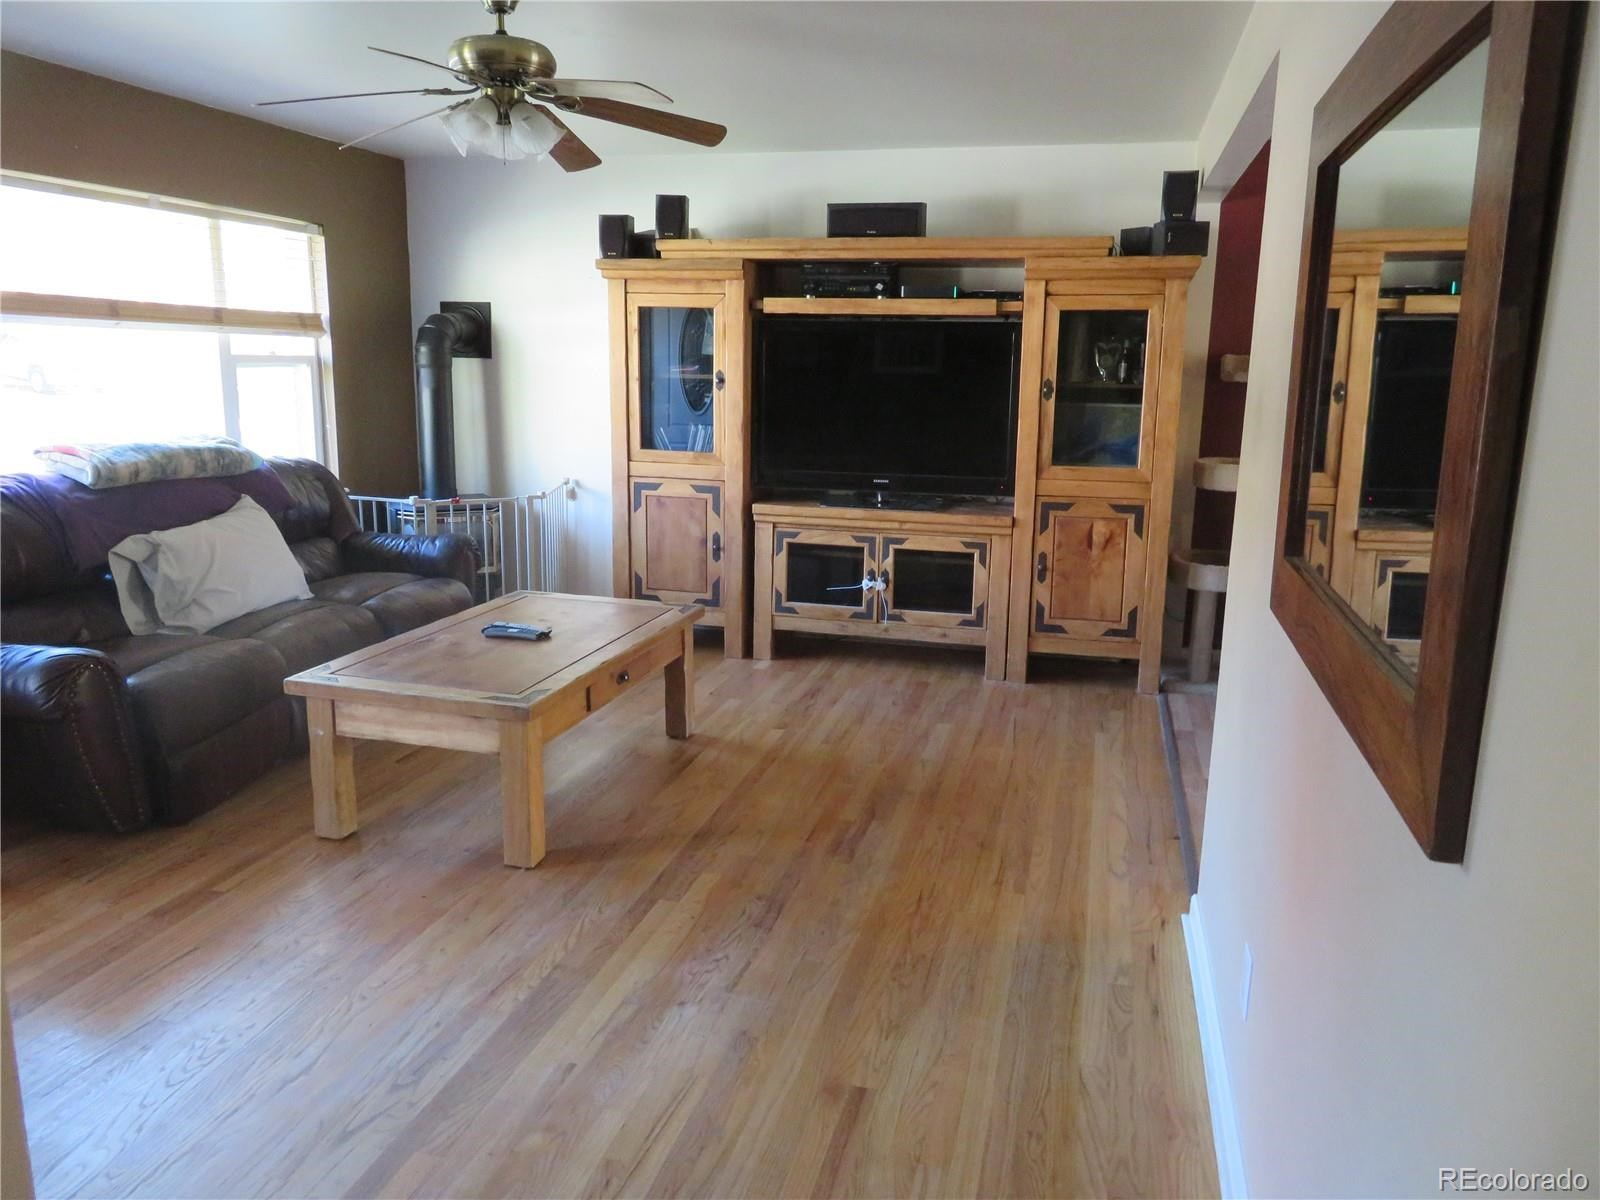 MLS# 3701465 - 2 - 13467 W 22nd Place, Golden, CO 80401